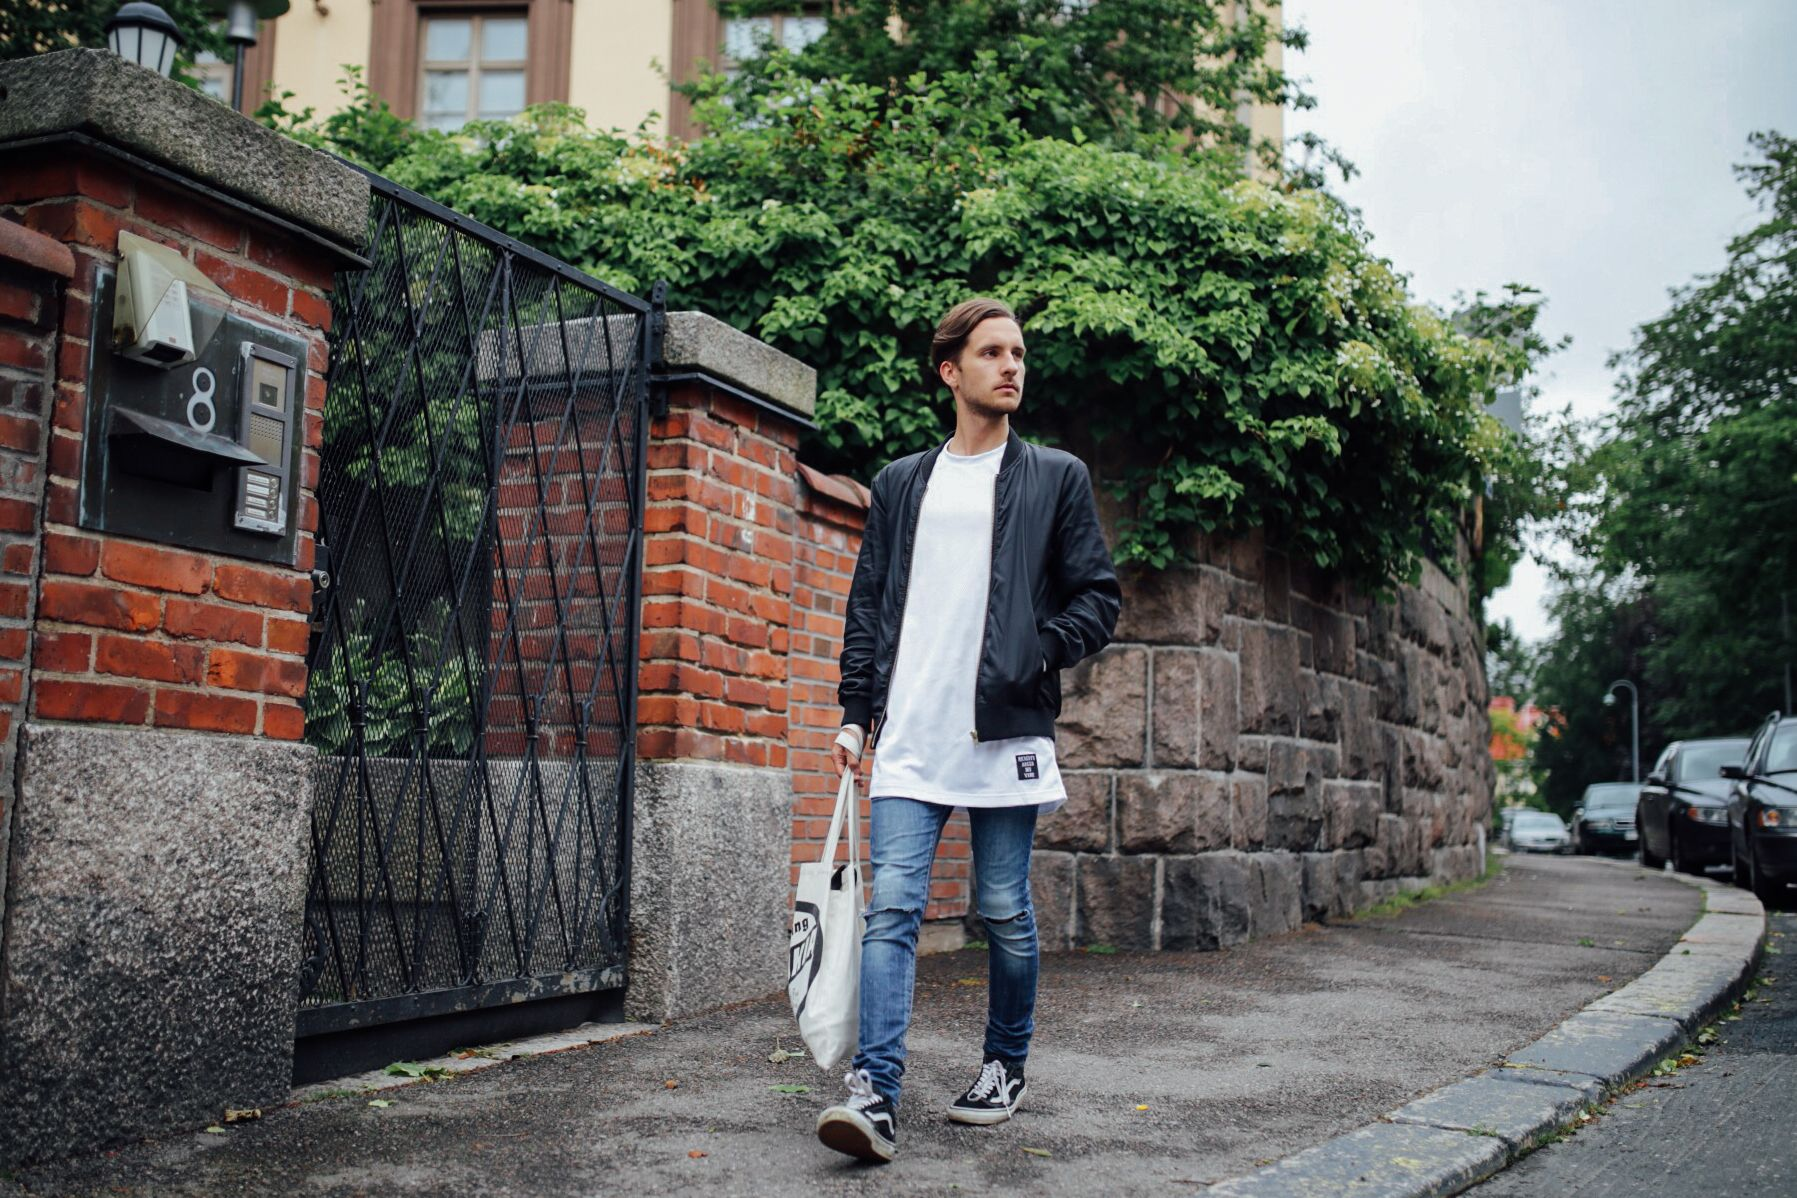 My #Outfit - #Men's #style - #streetstyle